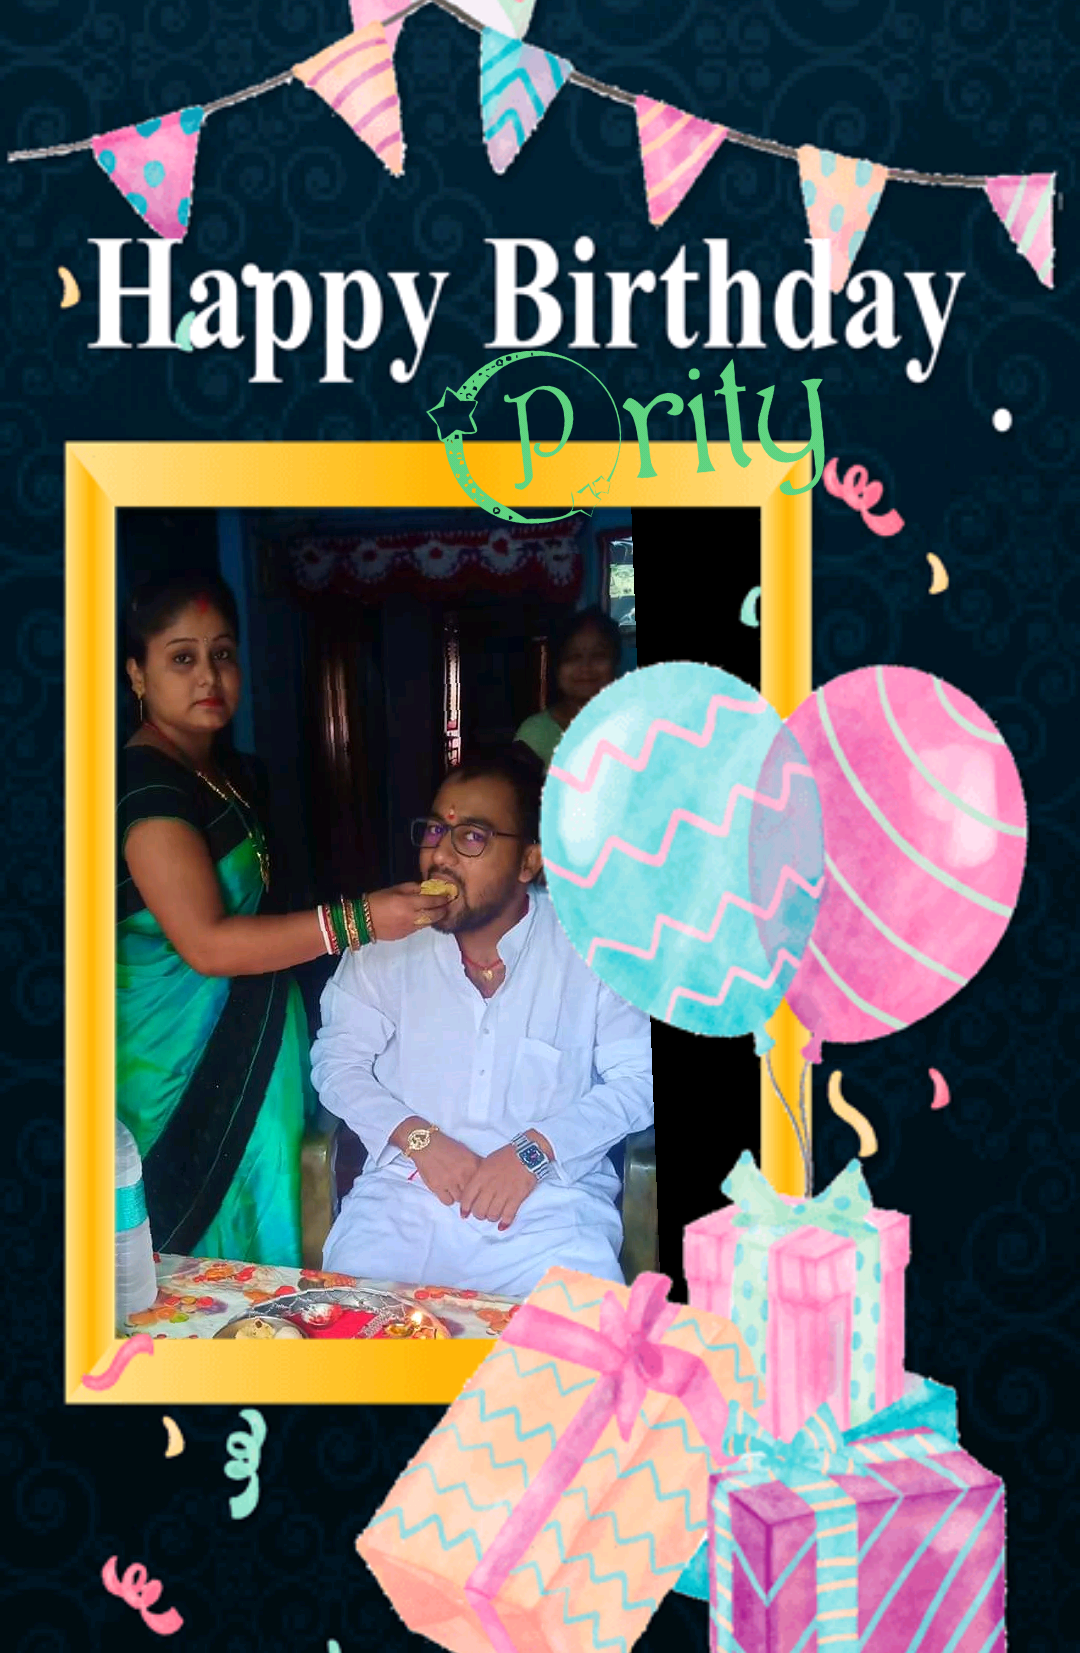 Happy birthday to you ........... Sister